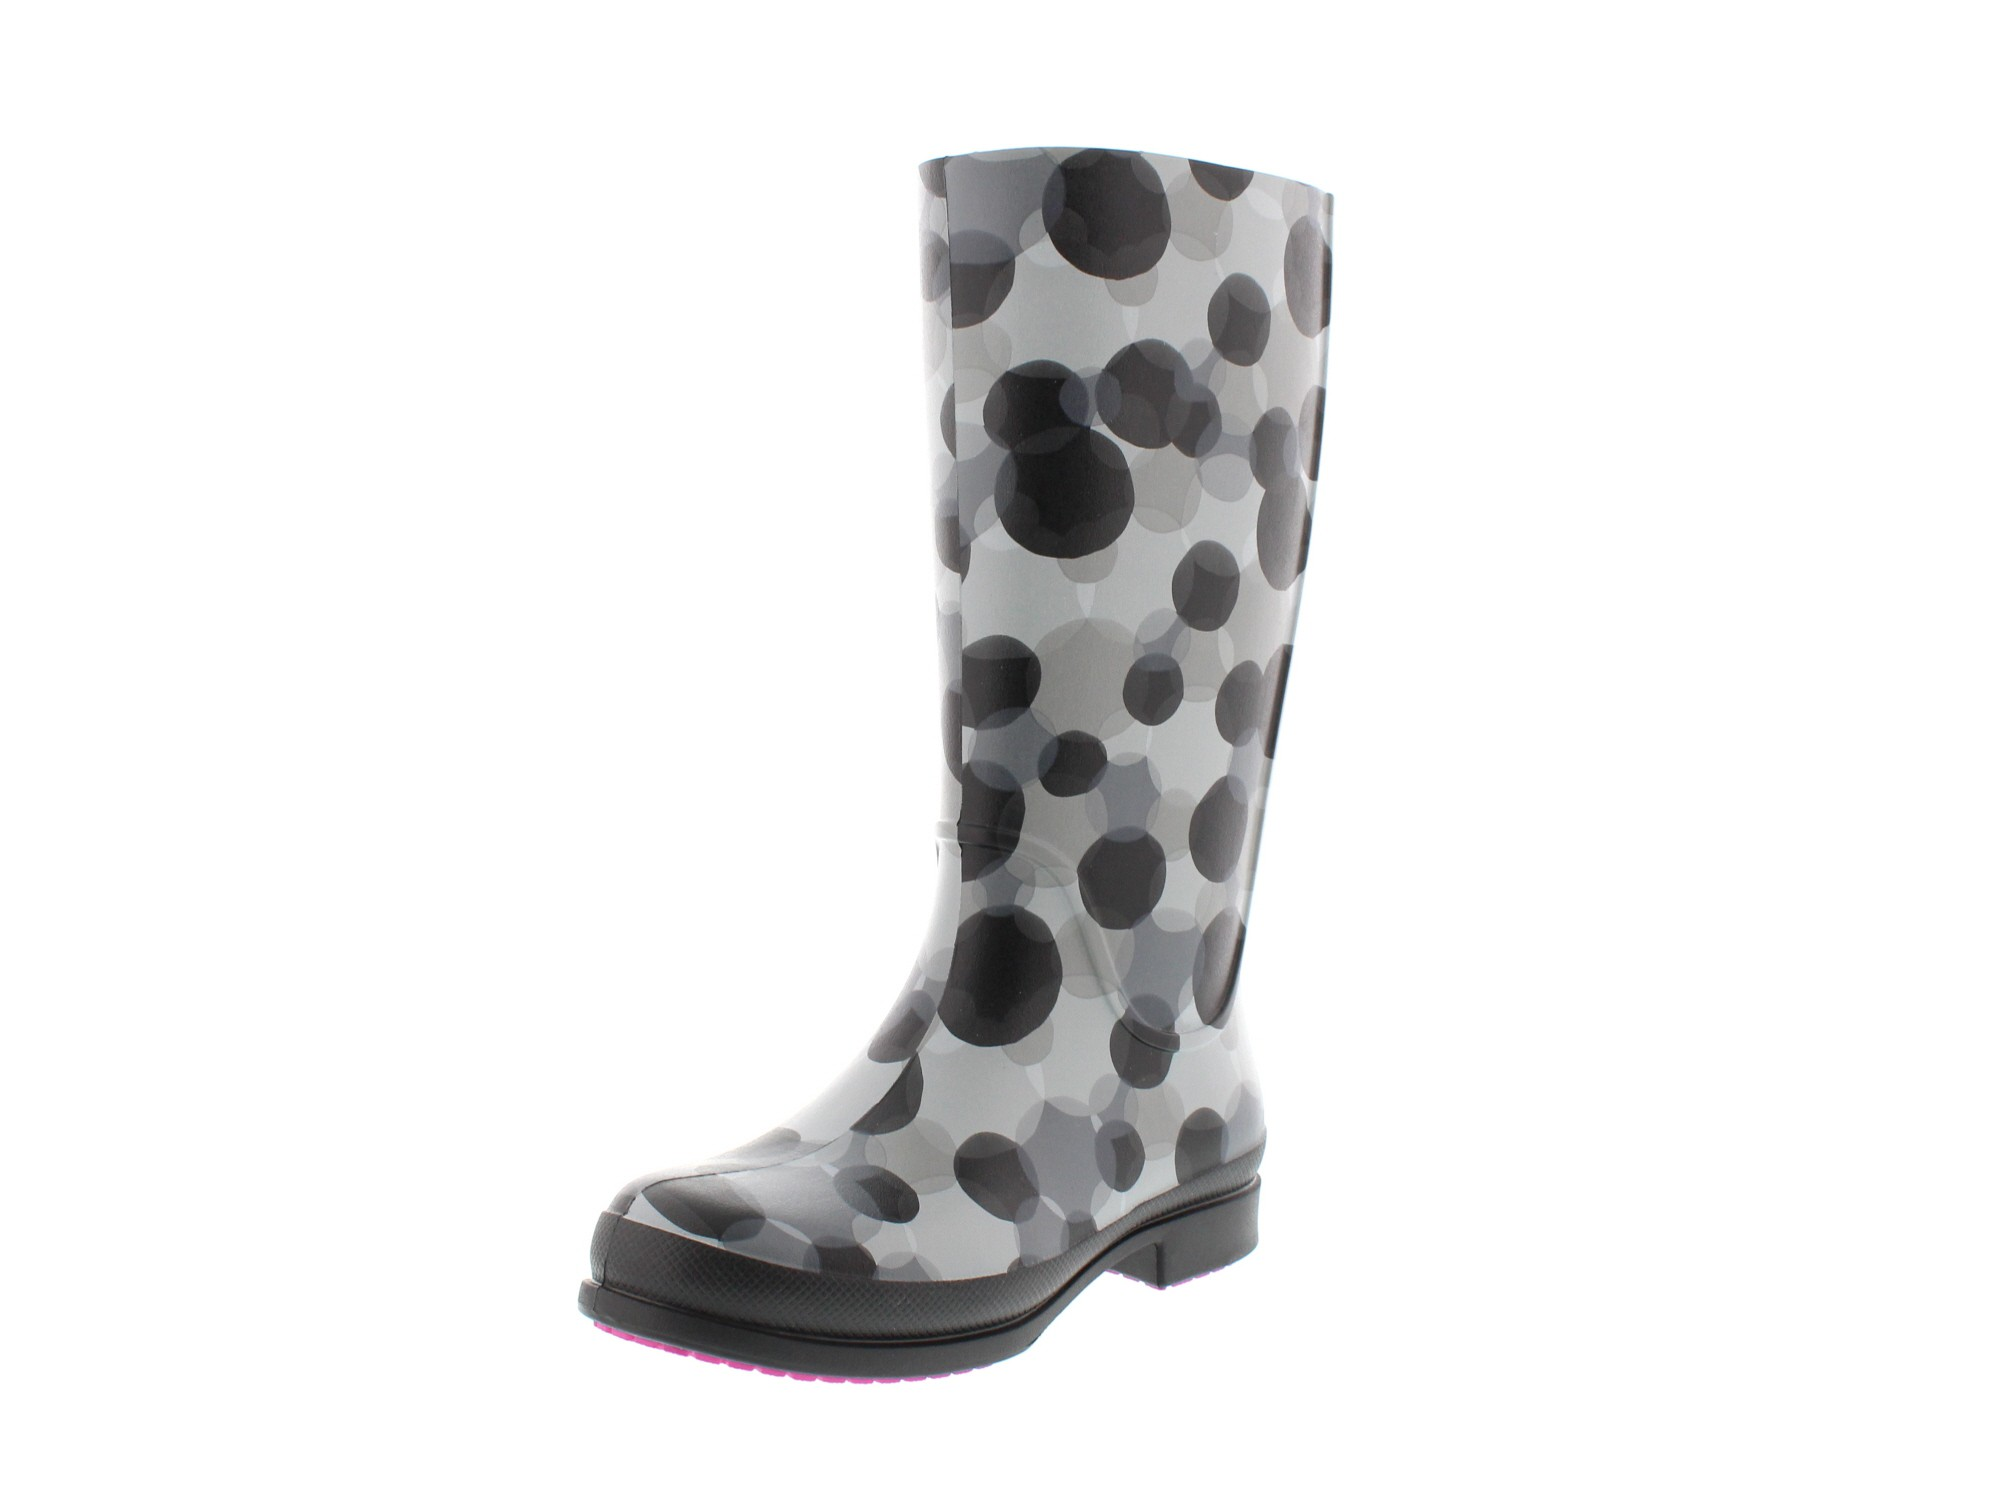 CROCS - Gummistiefel WELLIE POLKA DOT BOOT smoke black0